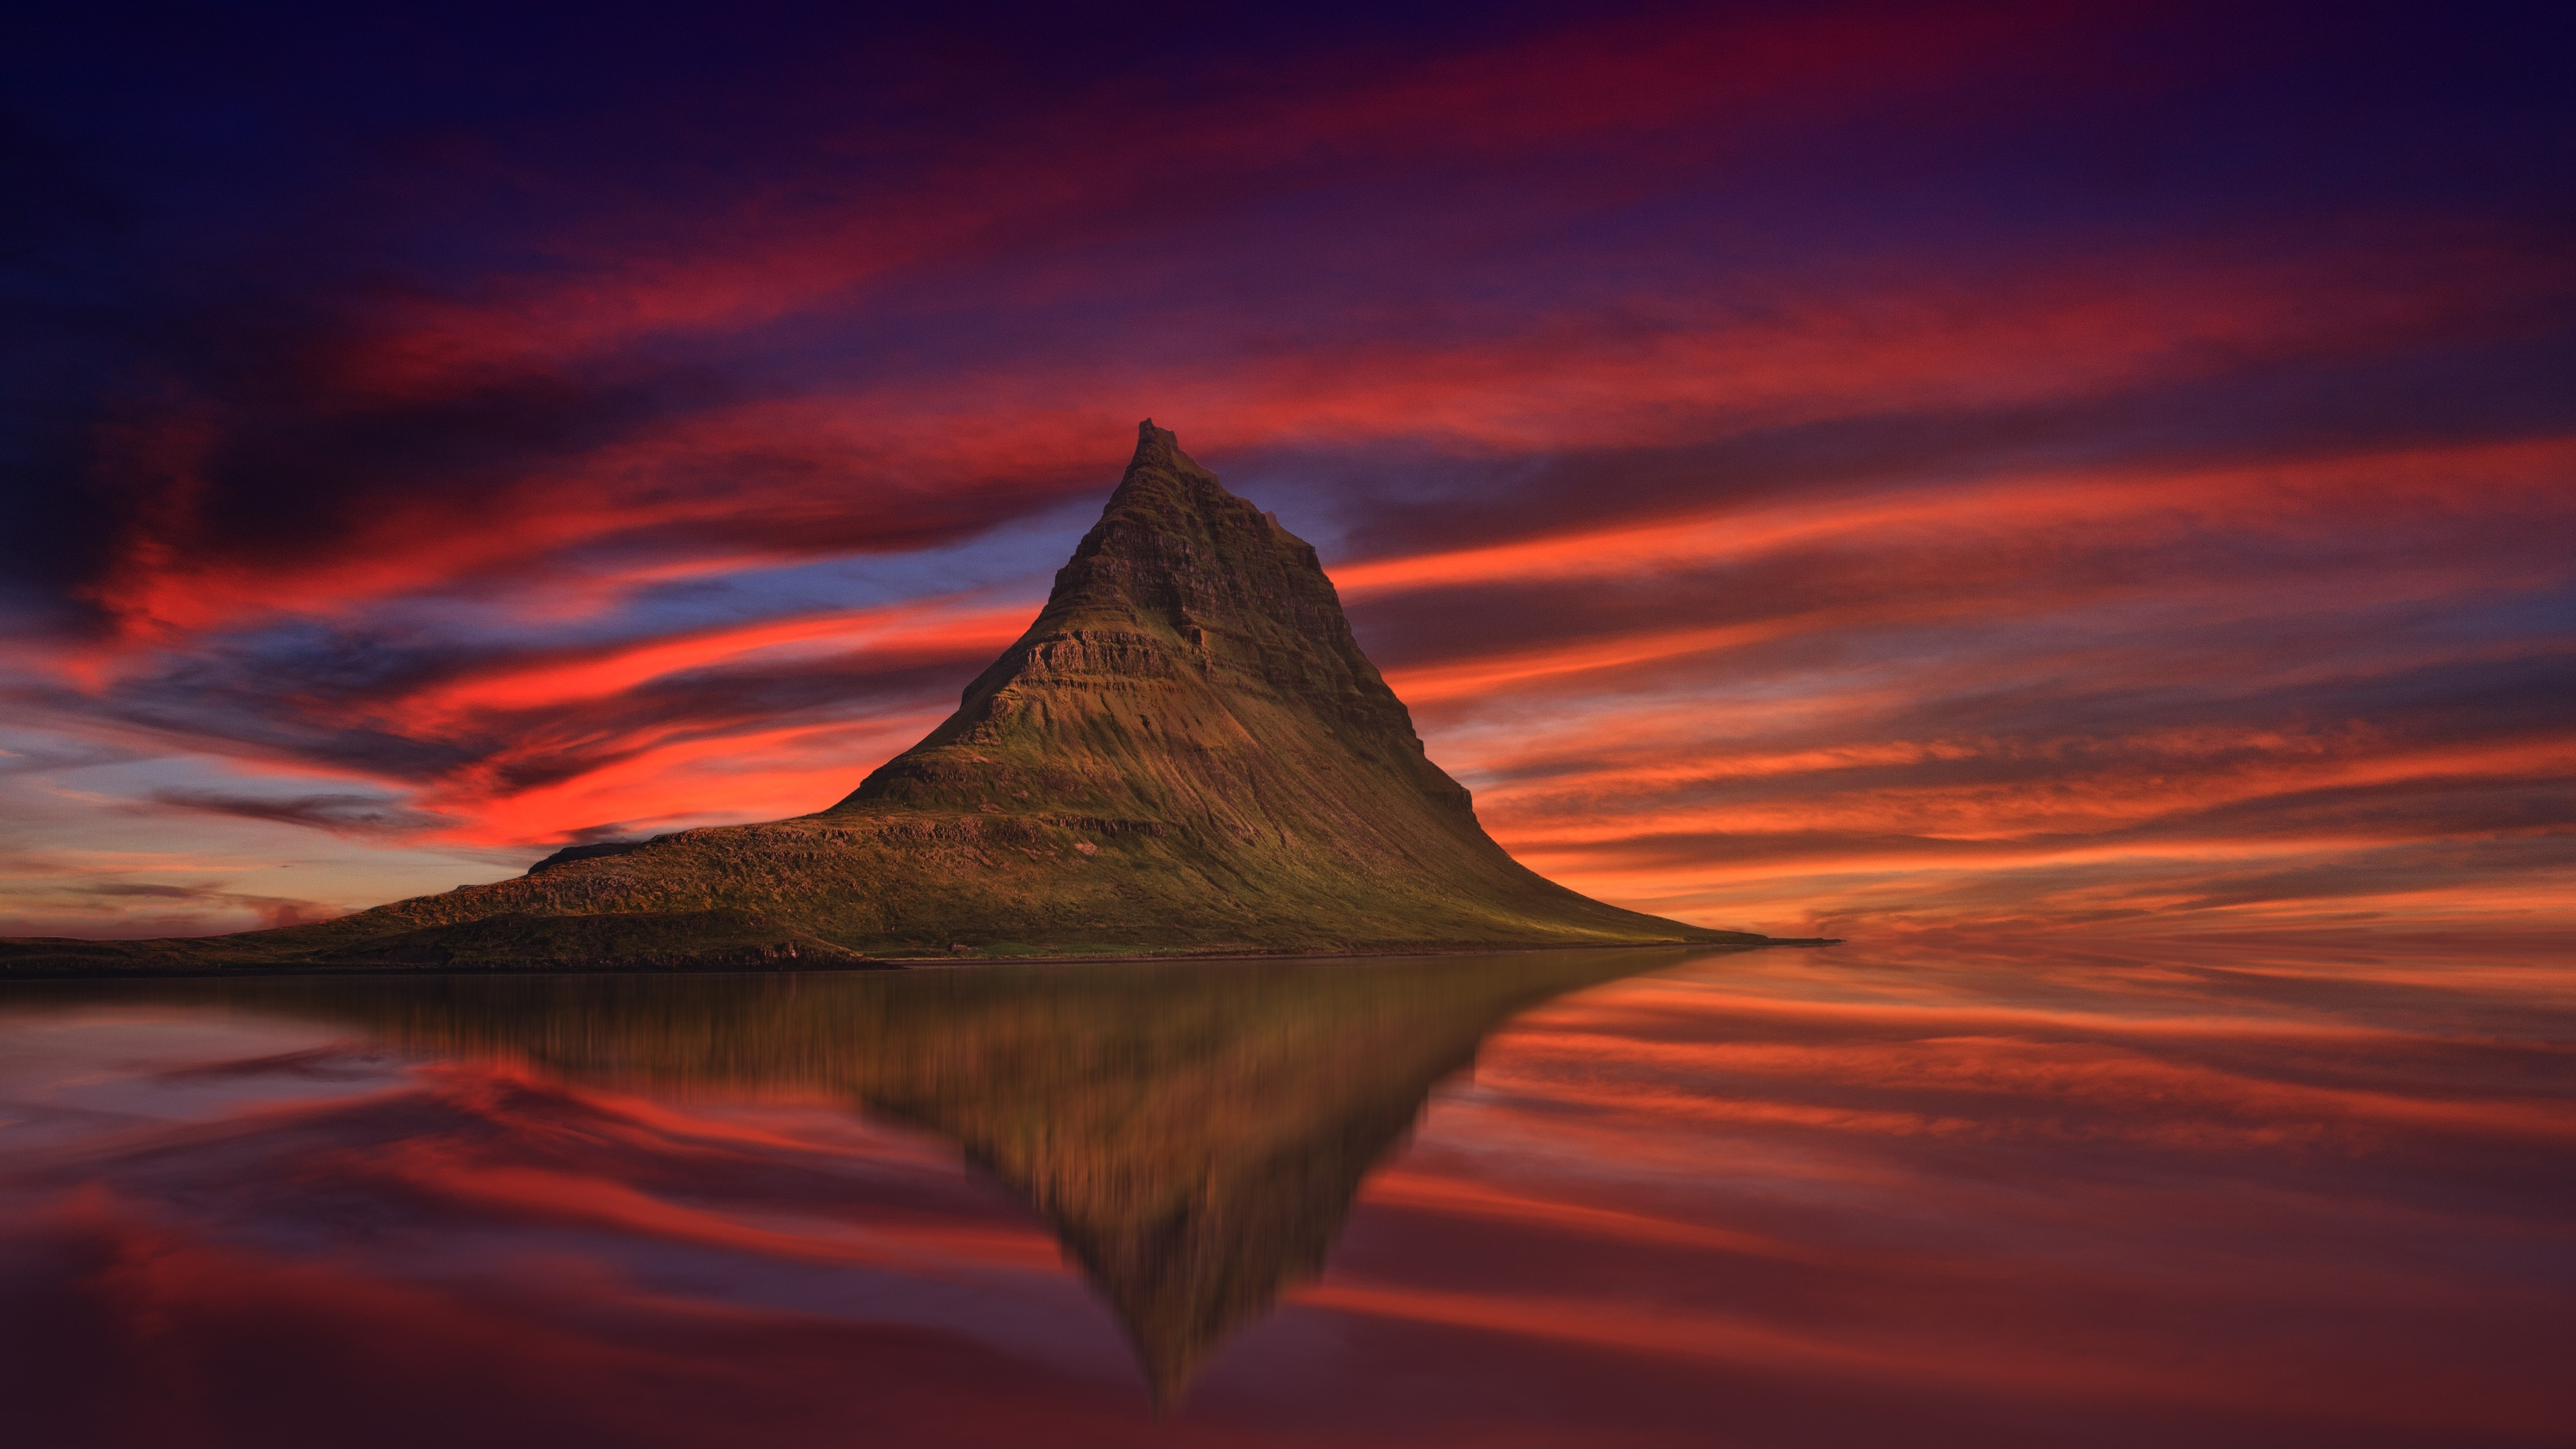 kirkjufell mountain abenrot sunset dusk 1540136620 - Kirkjufell Mountain Abenrot Sunset Dusk - sunset wallpapers, nature wallpapers, mountains wallpapers, hd-wallpapers, dusk wallpapers, 4k-wallpapers